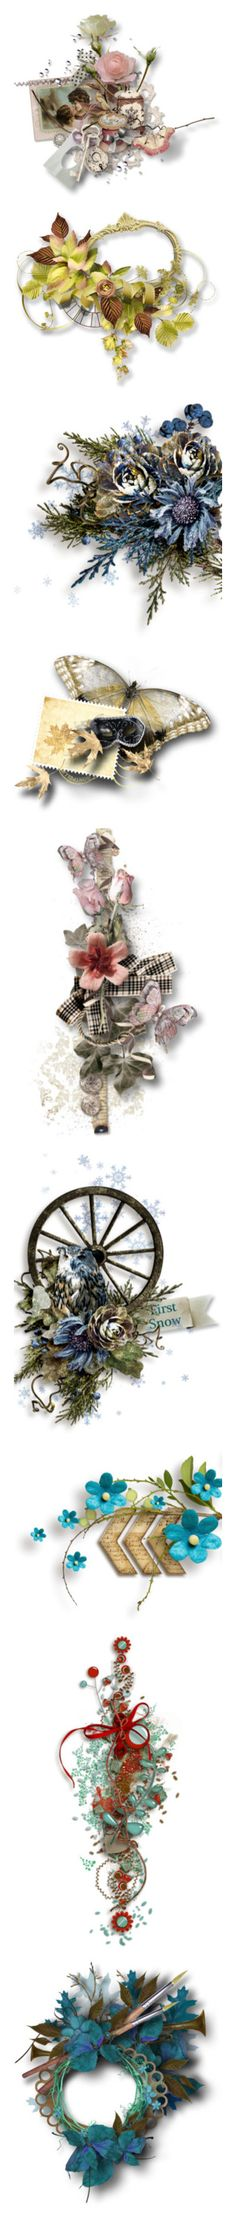 """Digital Scrap"" by borislava-zo3bi ❤ liked on Polyvore featuring clusters, flowers, frame, filler, backgrounds, borders, picture frame, winter, cluster frames and butterflies"